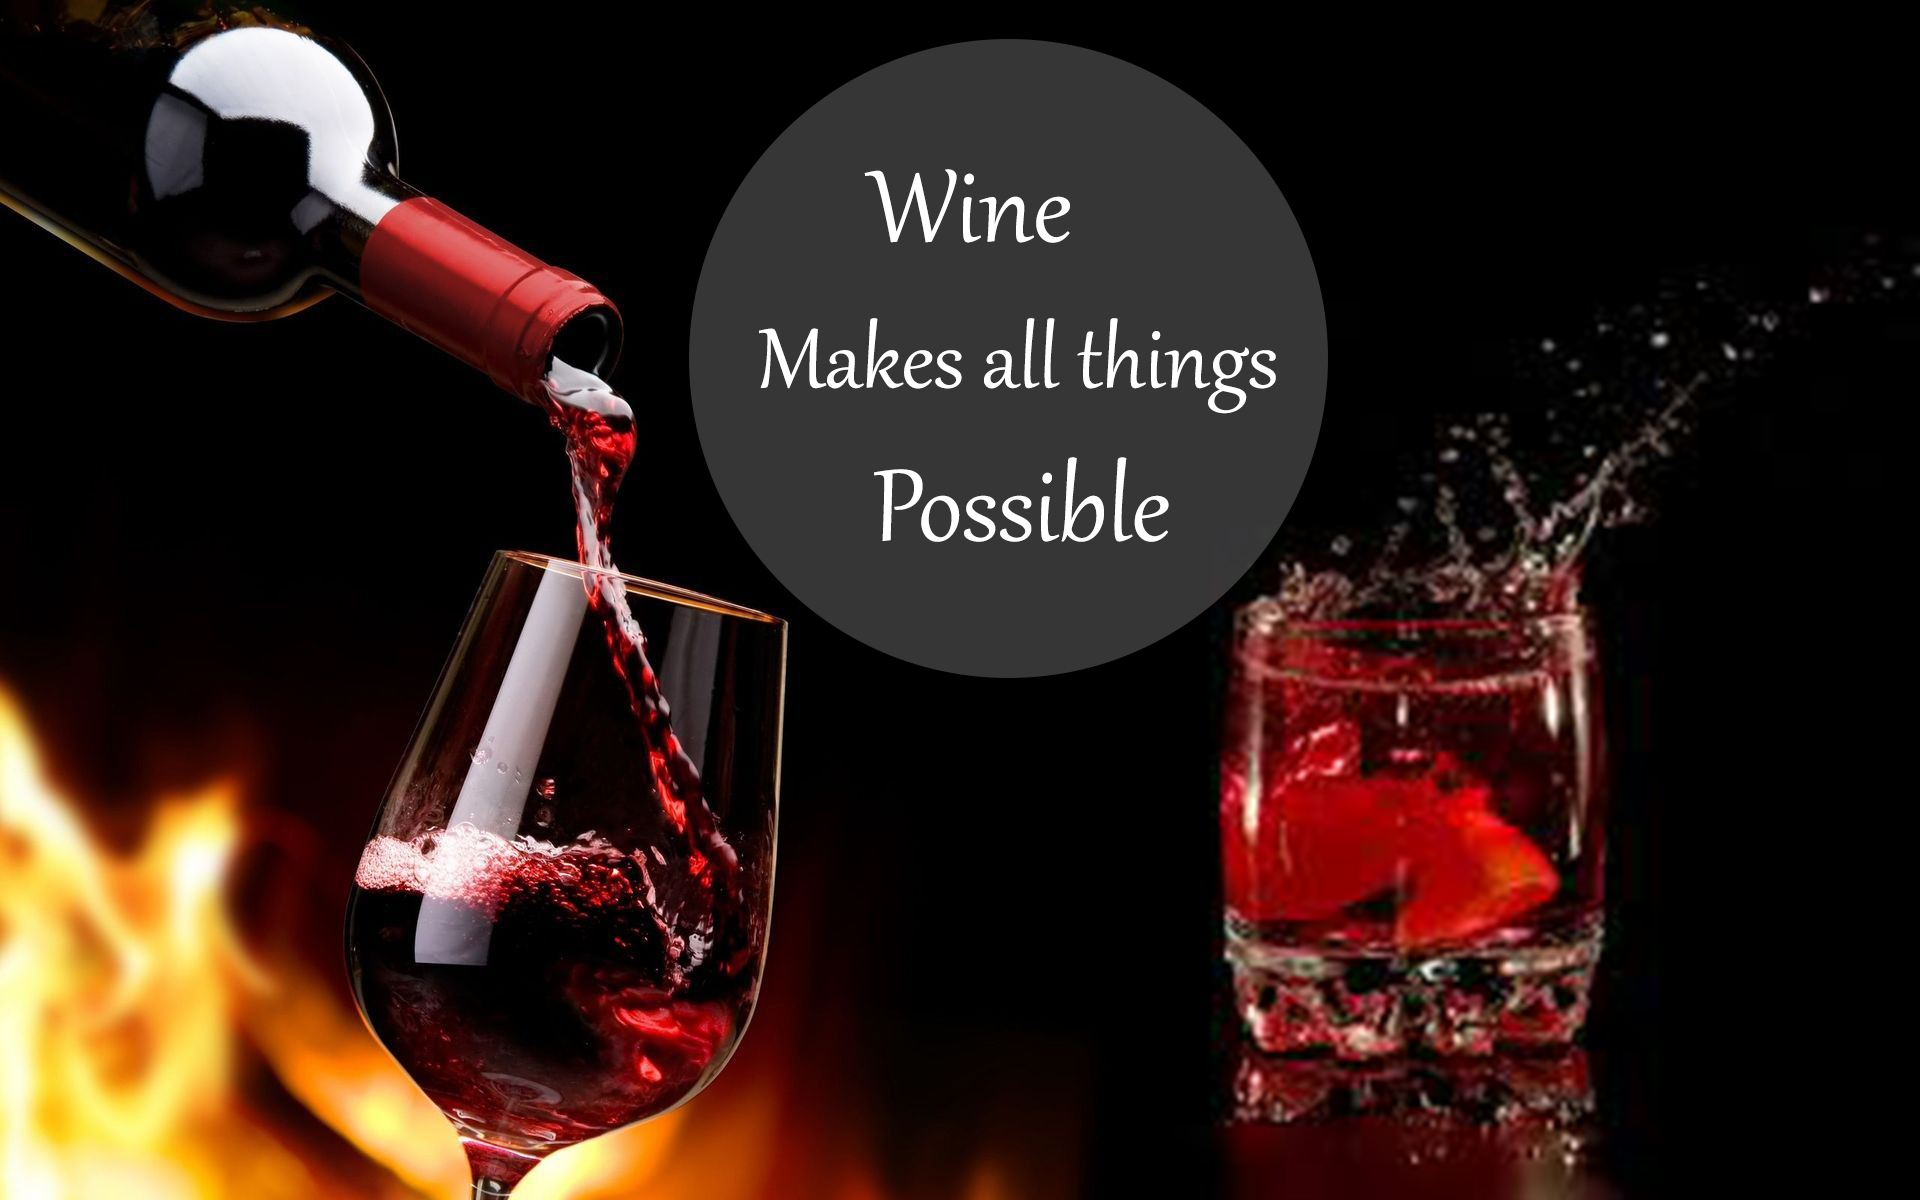 wine-bottle-and-glass-wallpaper